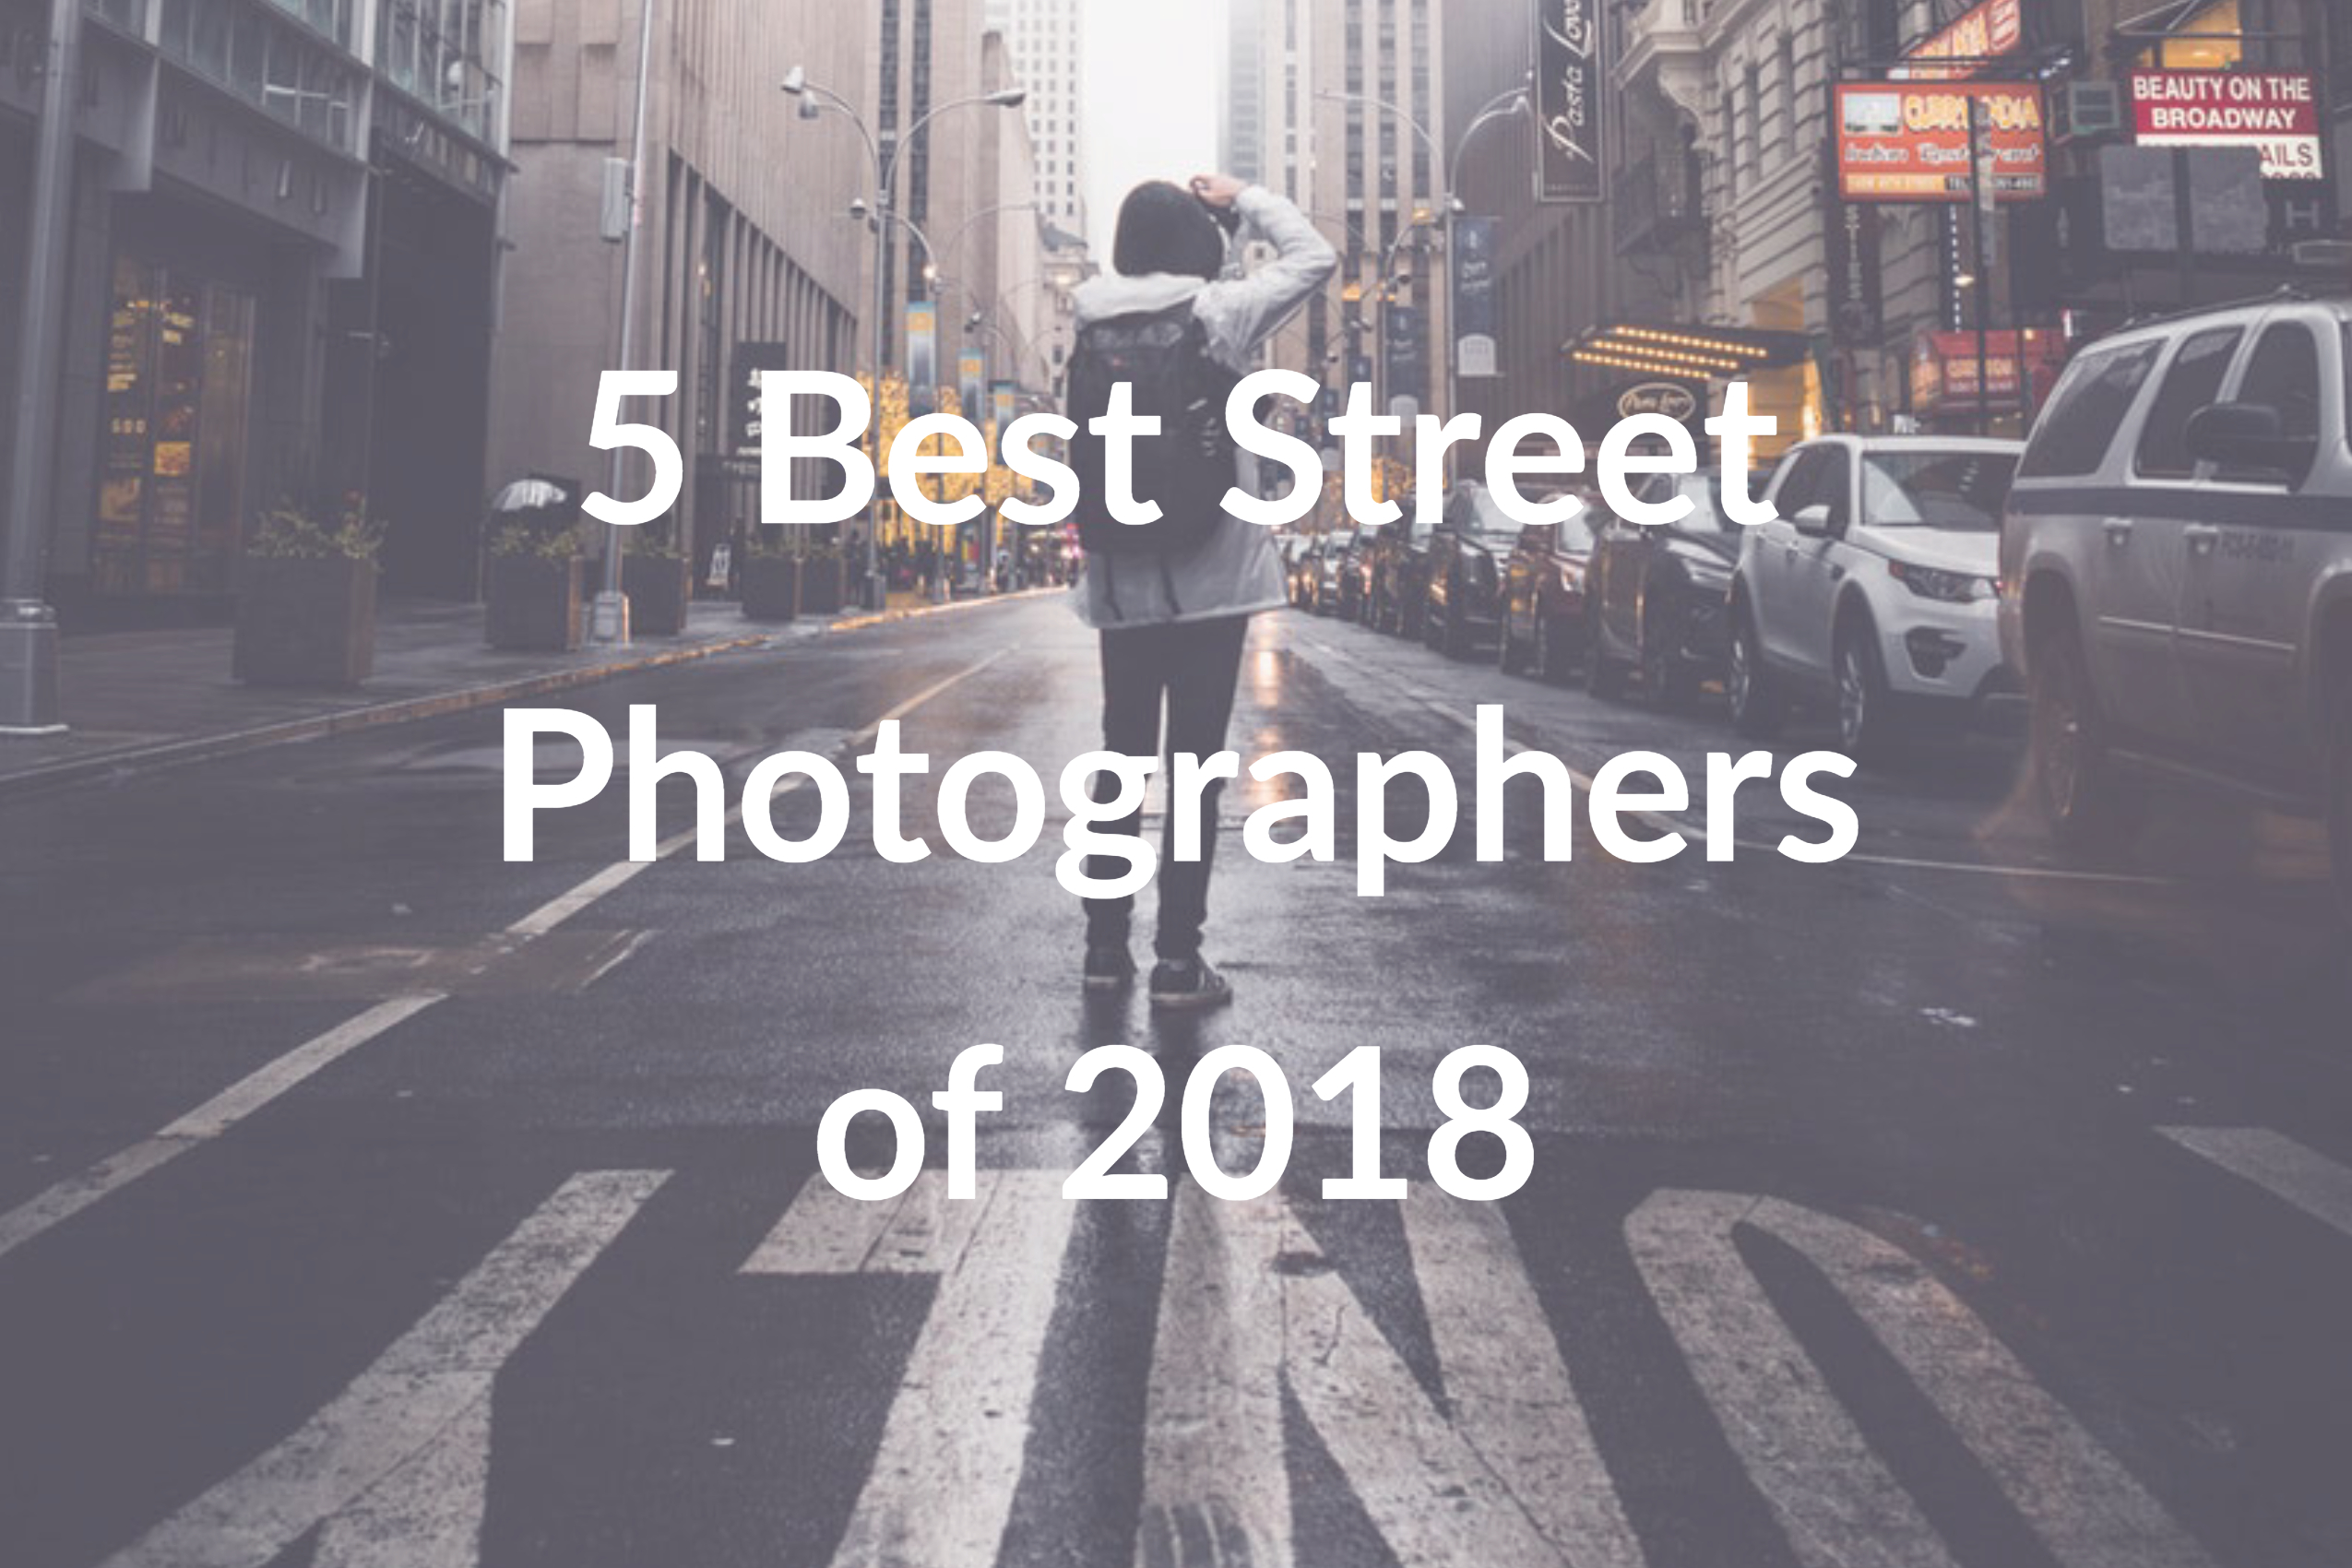 5 Best Street Photographers of 2018